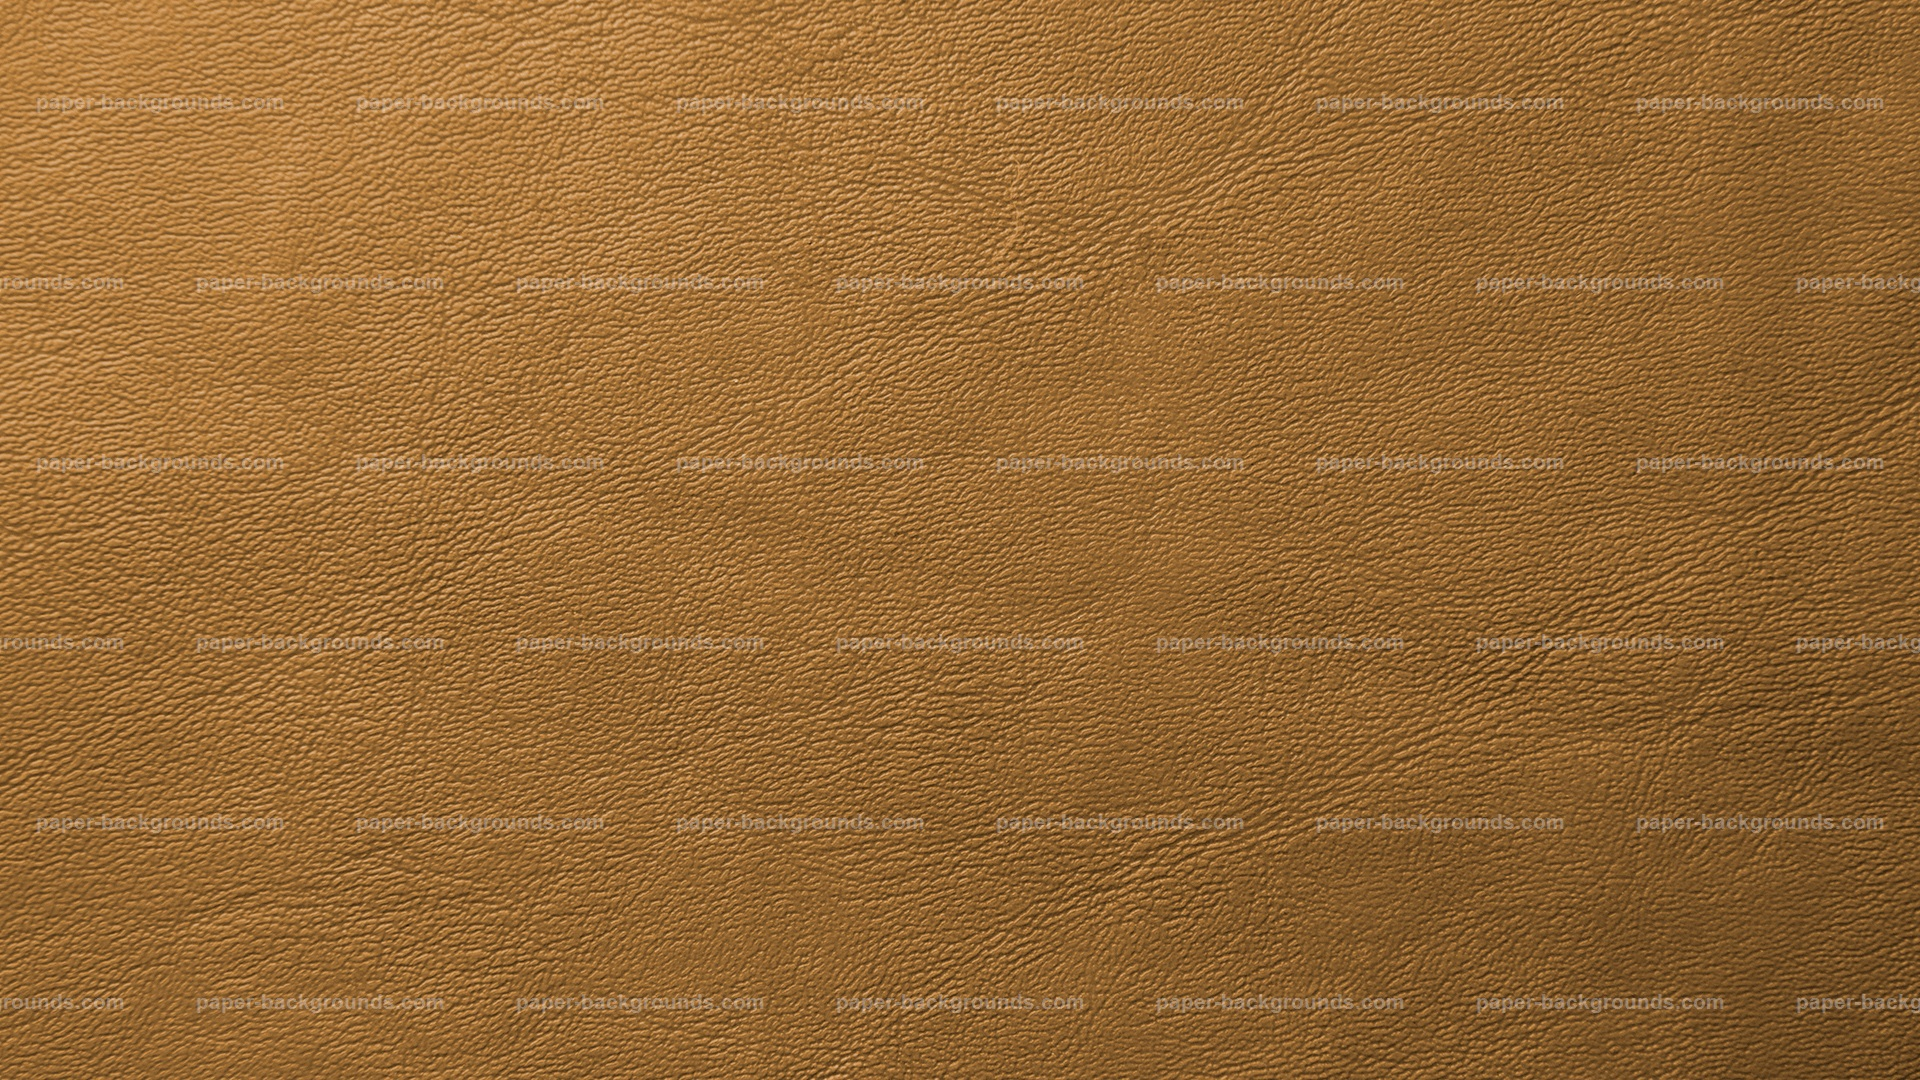 Brown Leather Texture HD